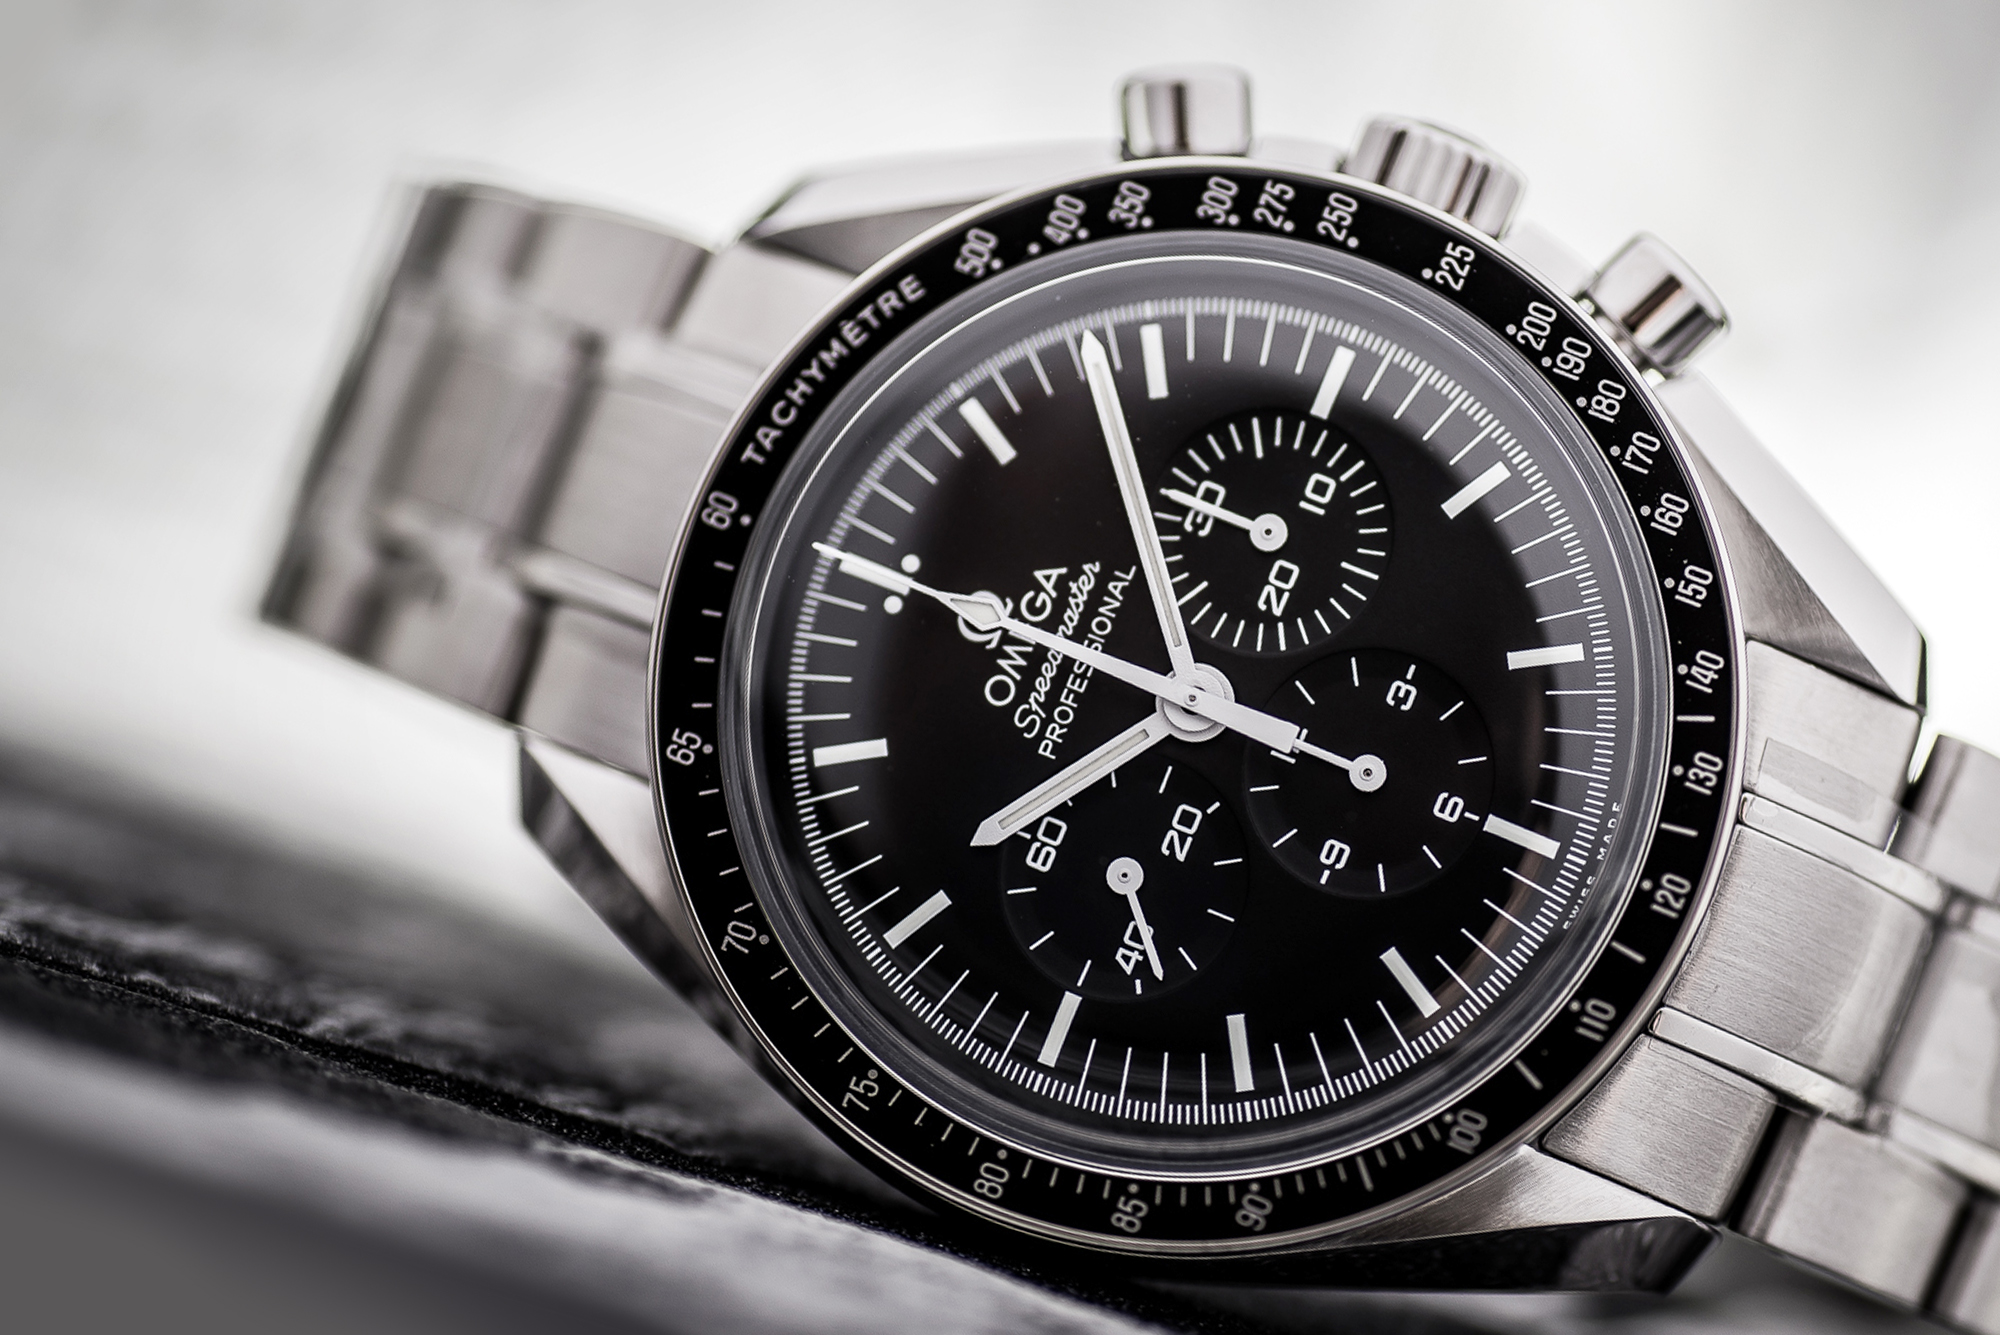 Omega Watches For Sale Offerings And Prices